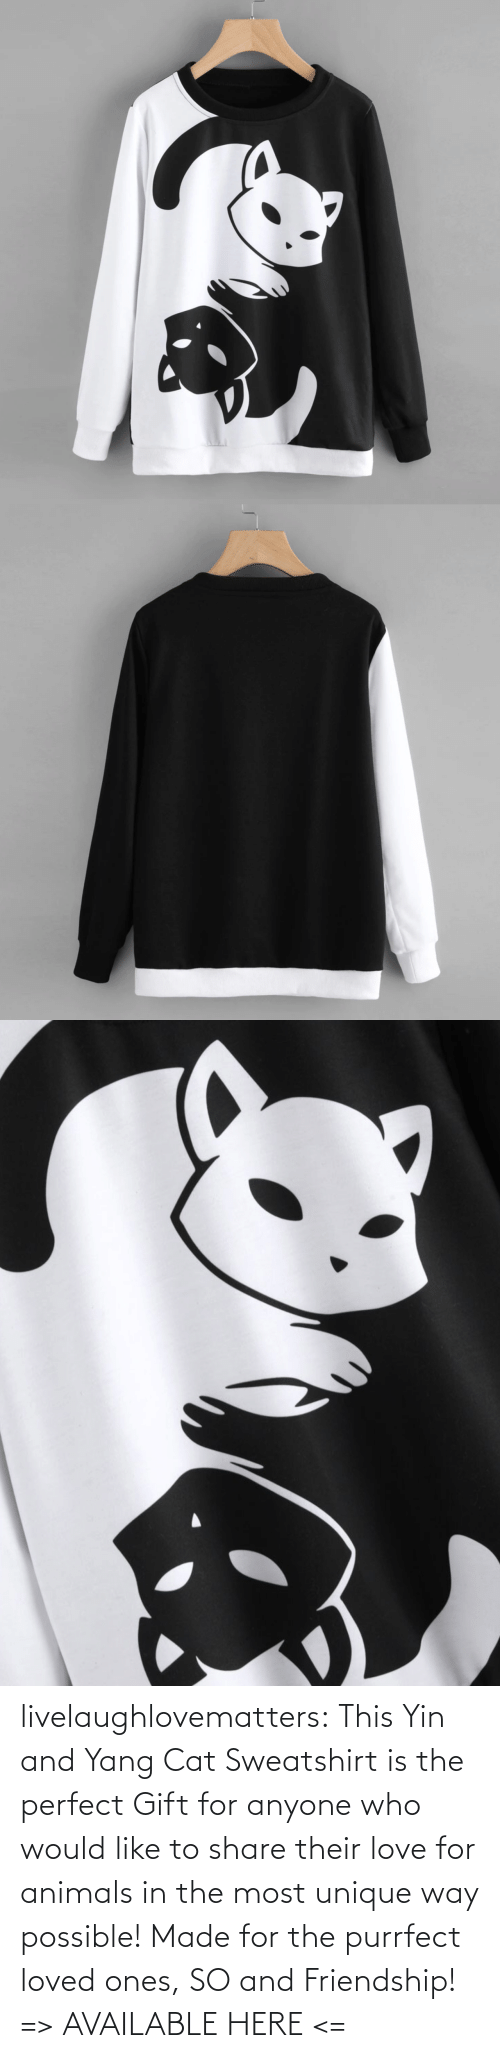 perfect: livelaughlovematters:  This Yin and Yang Cat Sweatshirt is the perfect Gift for anyone who would like to share their love for animals in the most unique way possible! Made for the purrfect loved ones, SO and Friendship!  => AVAILABLE HERE <=